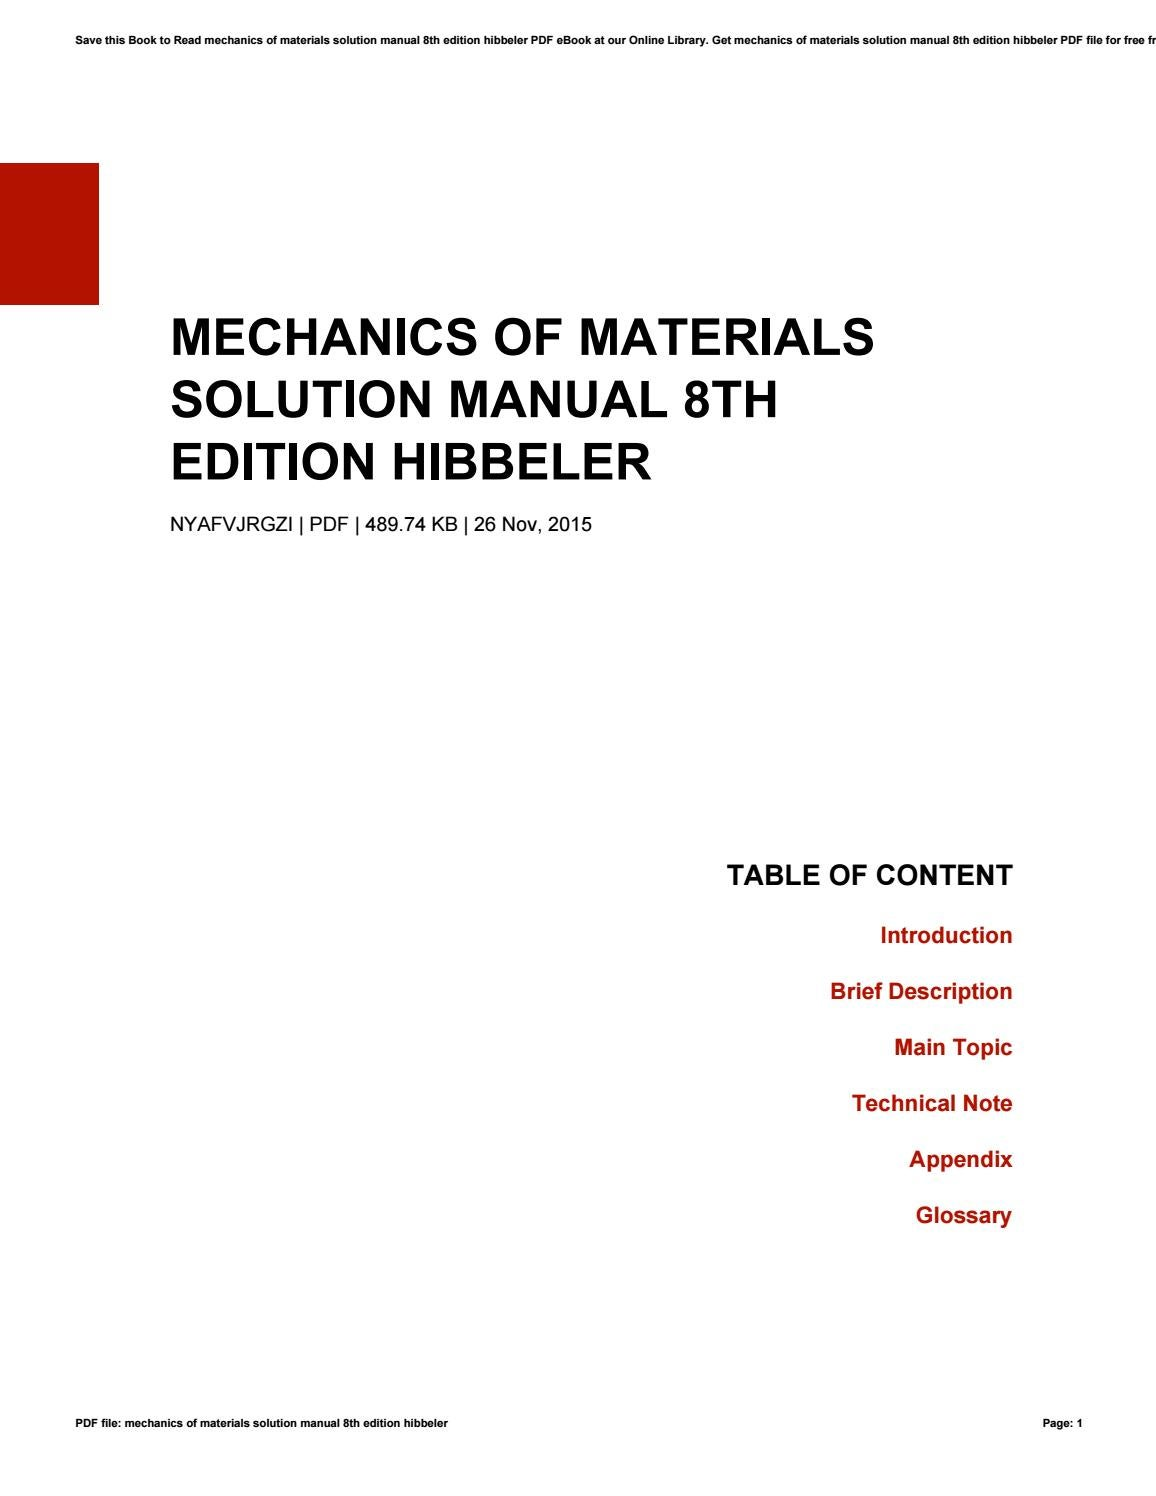 Mechanics of materials solution manual 8th edition hibbeler by  SylviaKnaack4572 - issuu